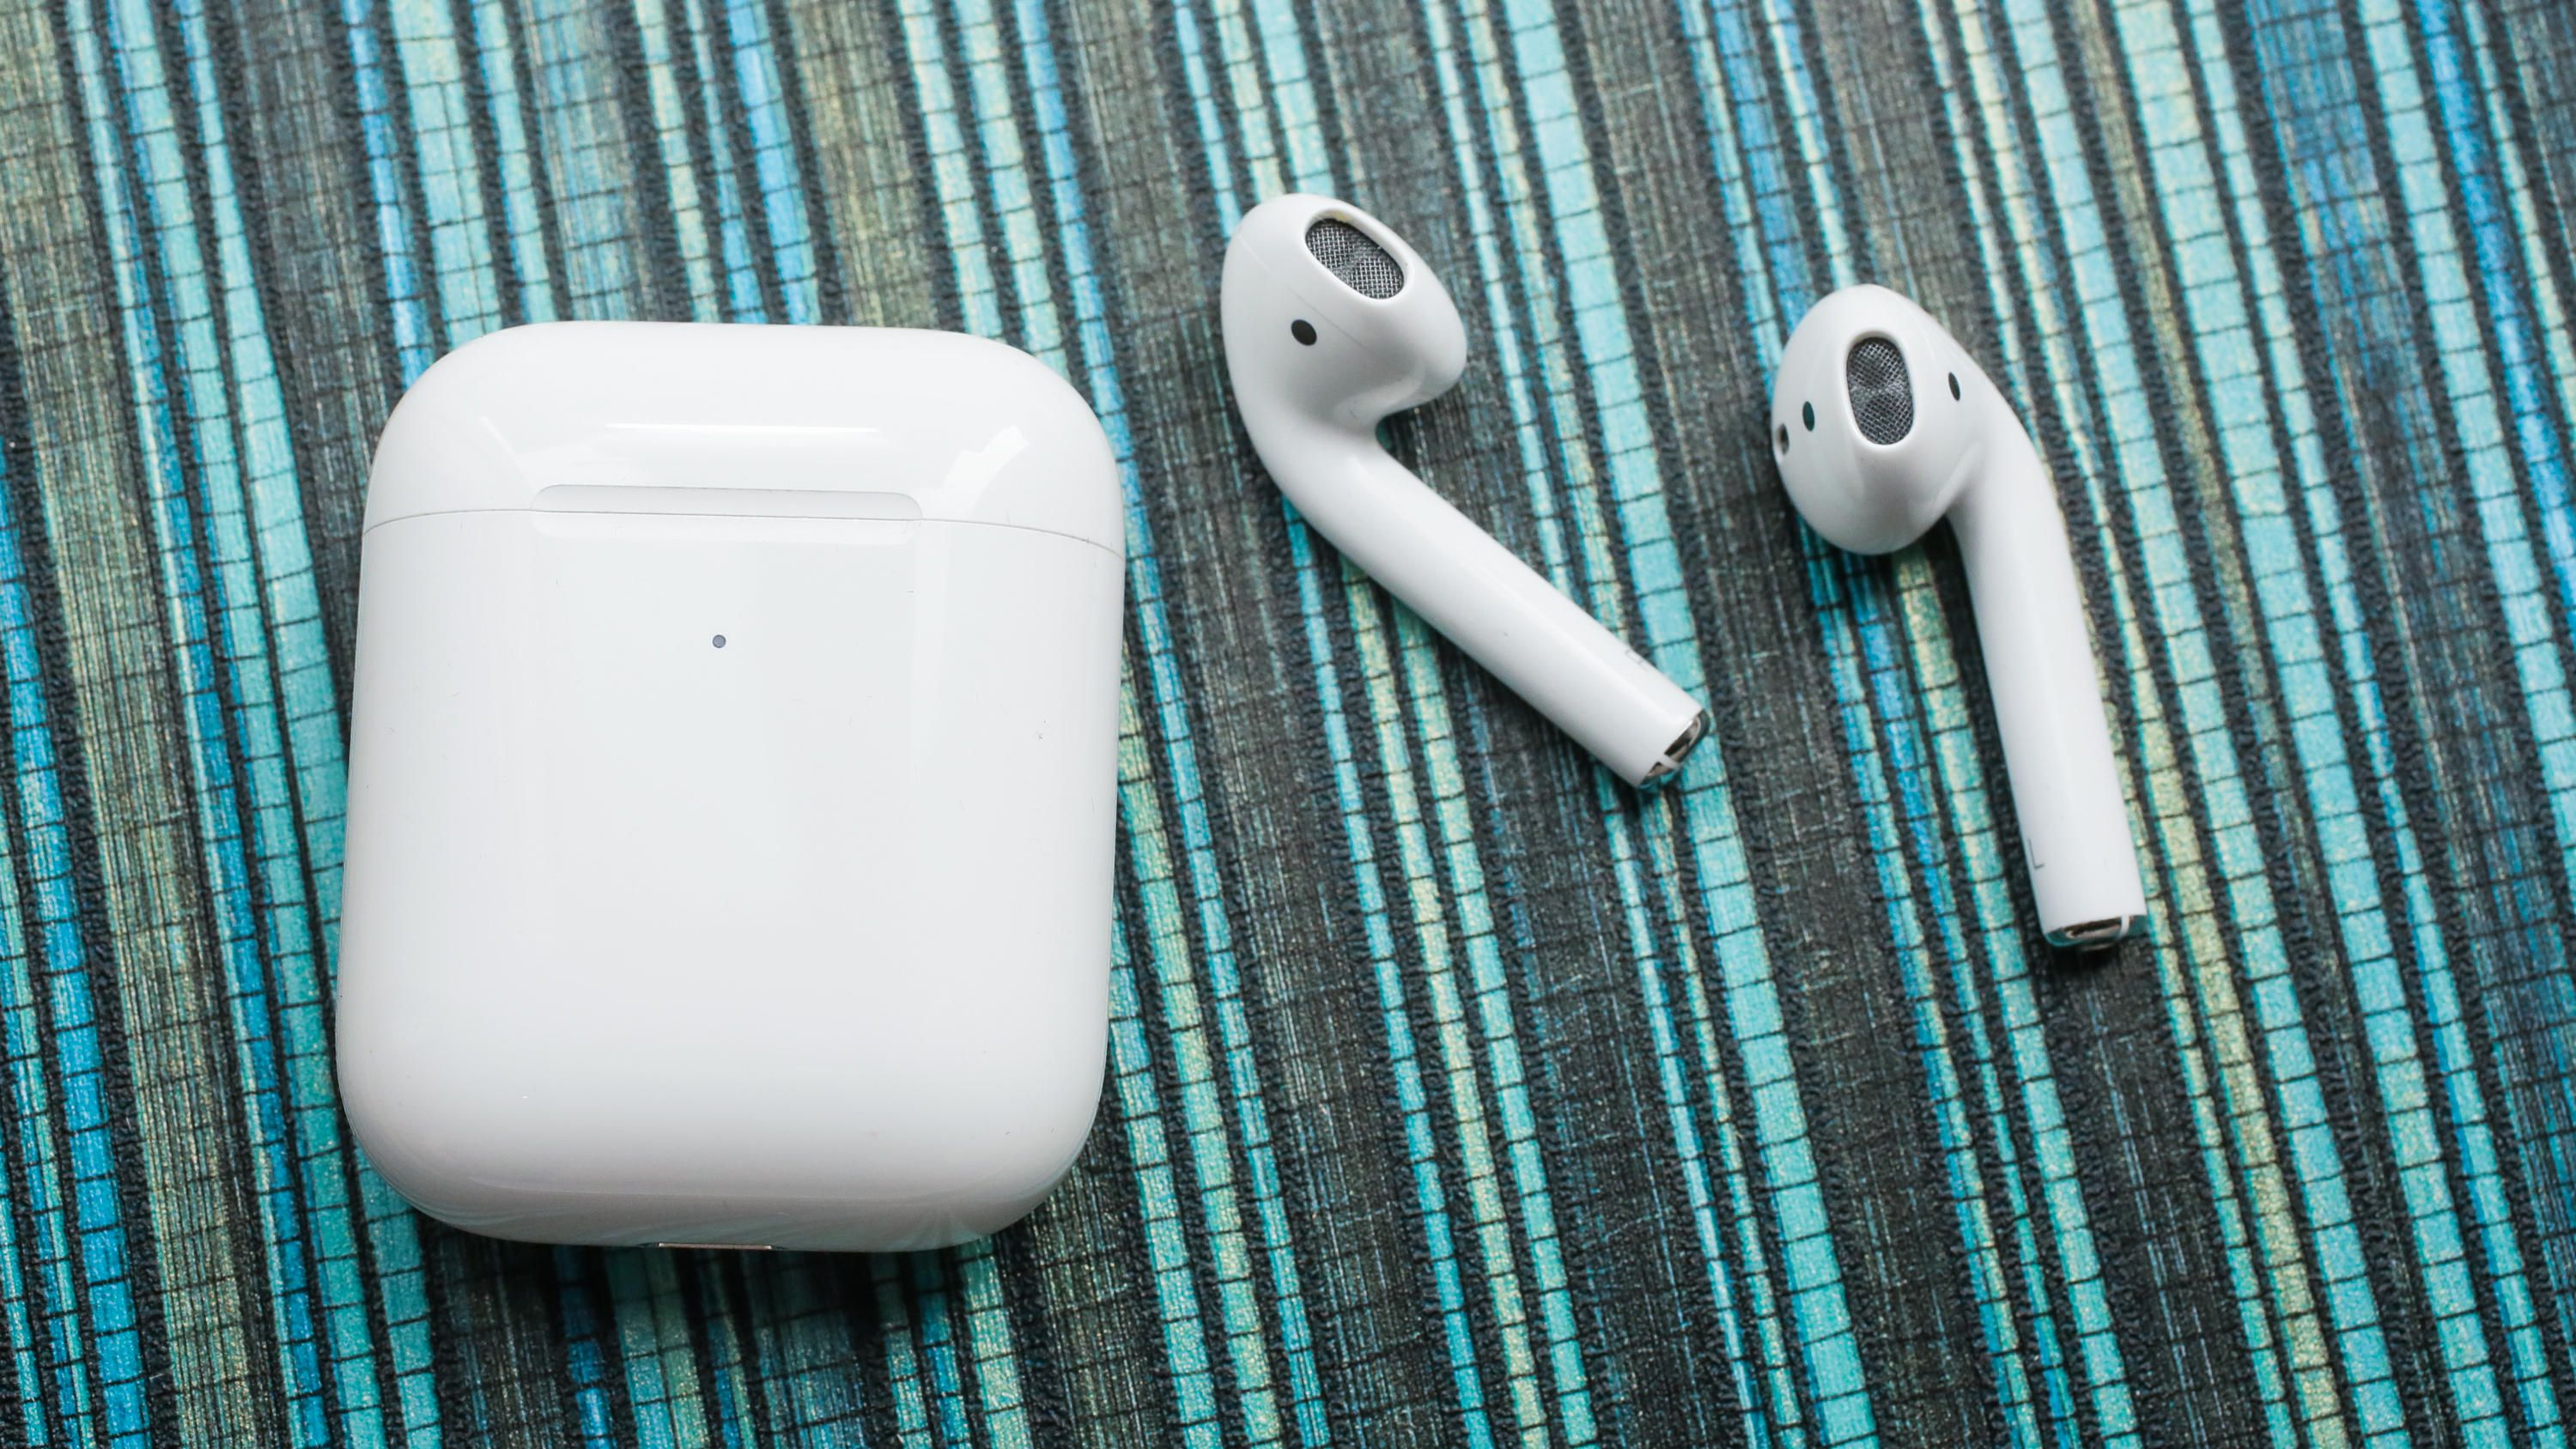 09-airpods-2nd-generation